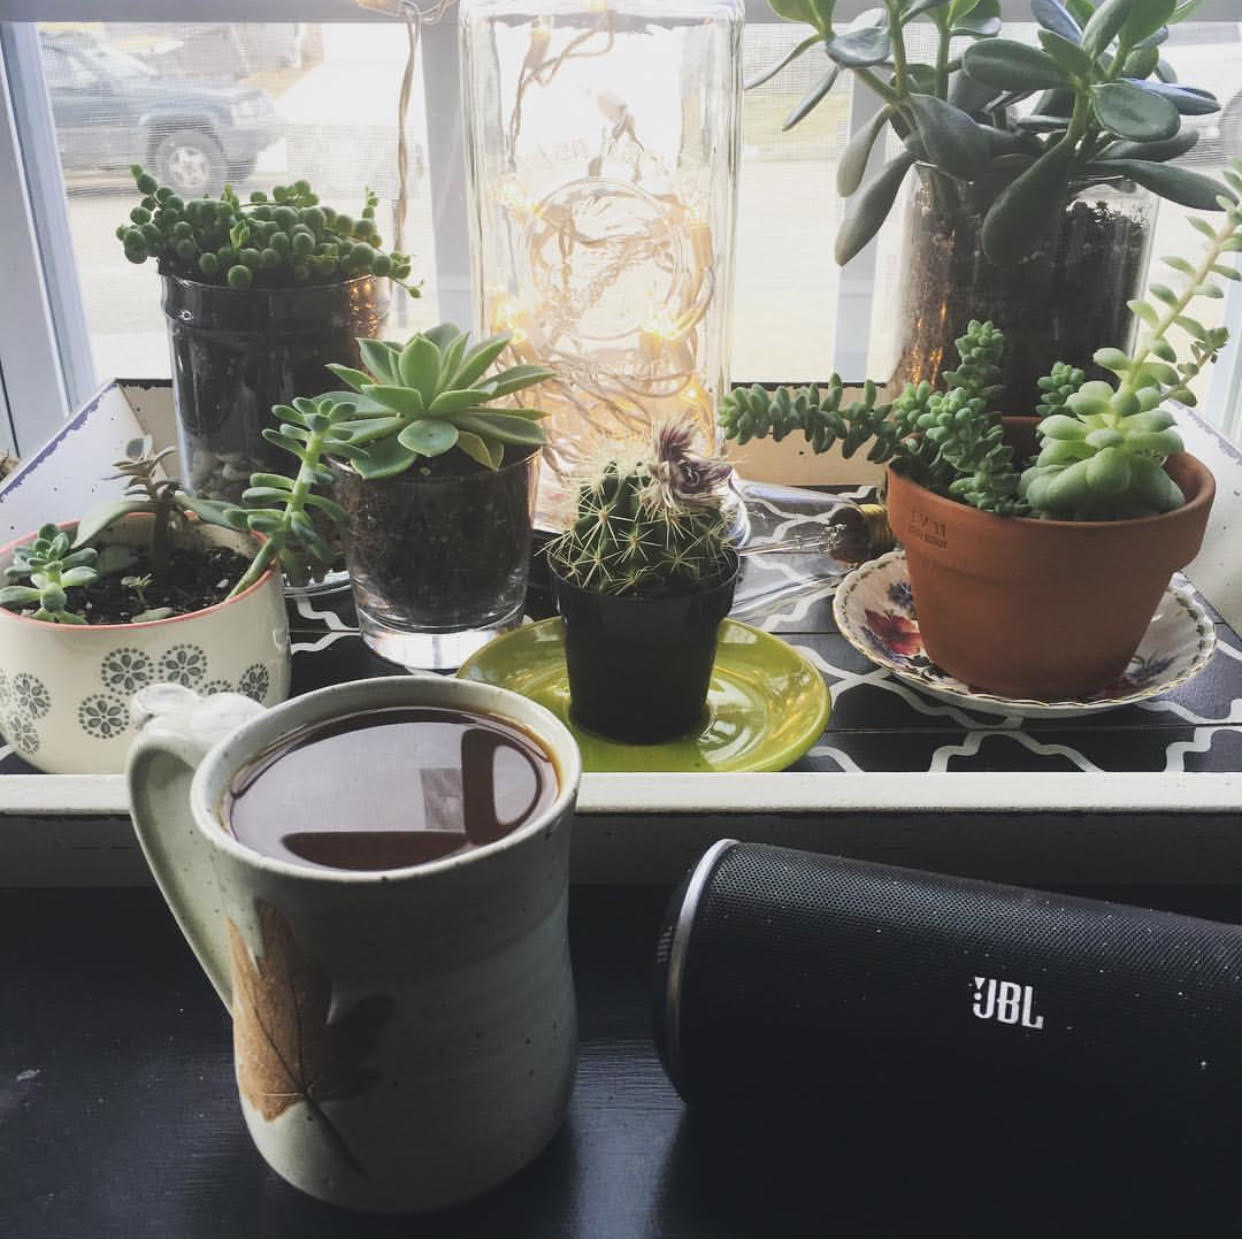 Plants and good coffee.